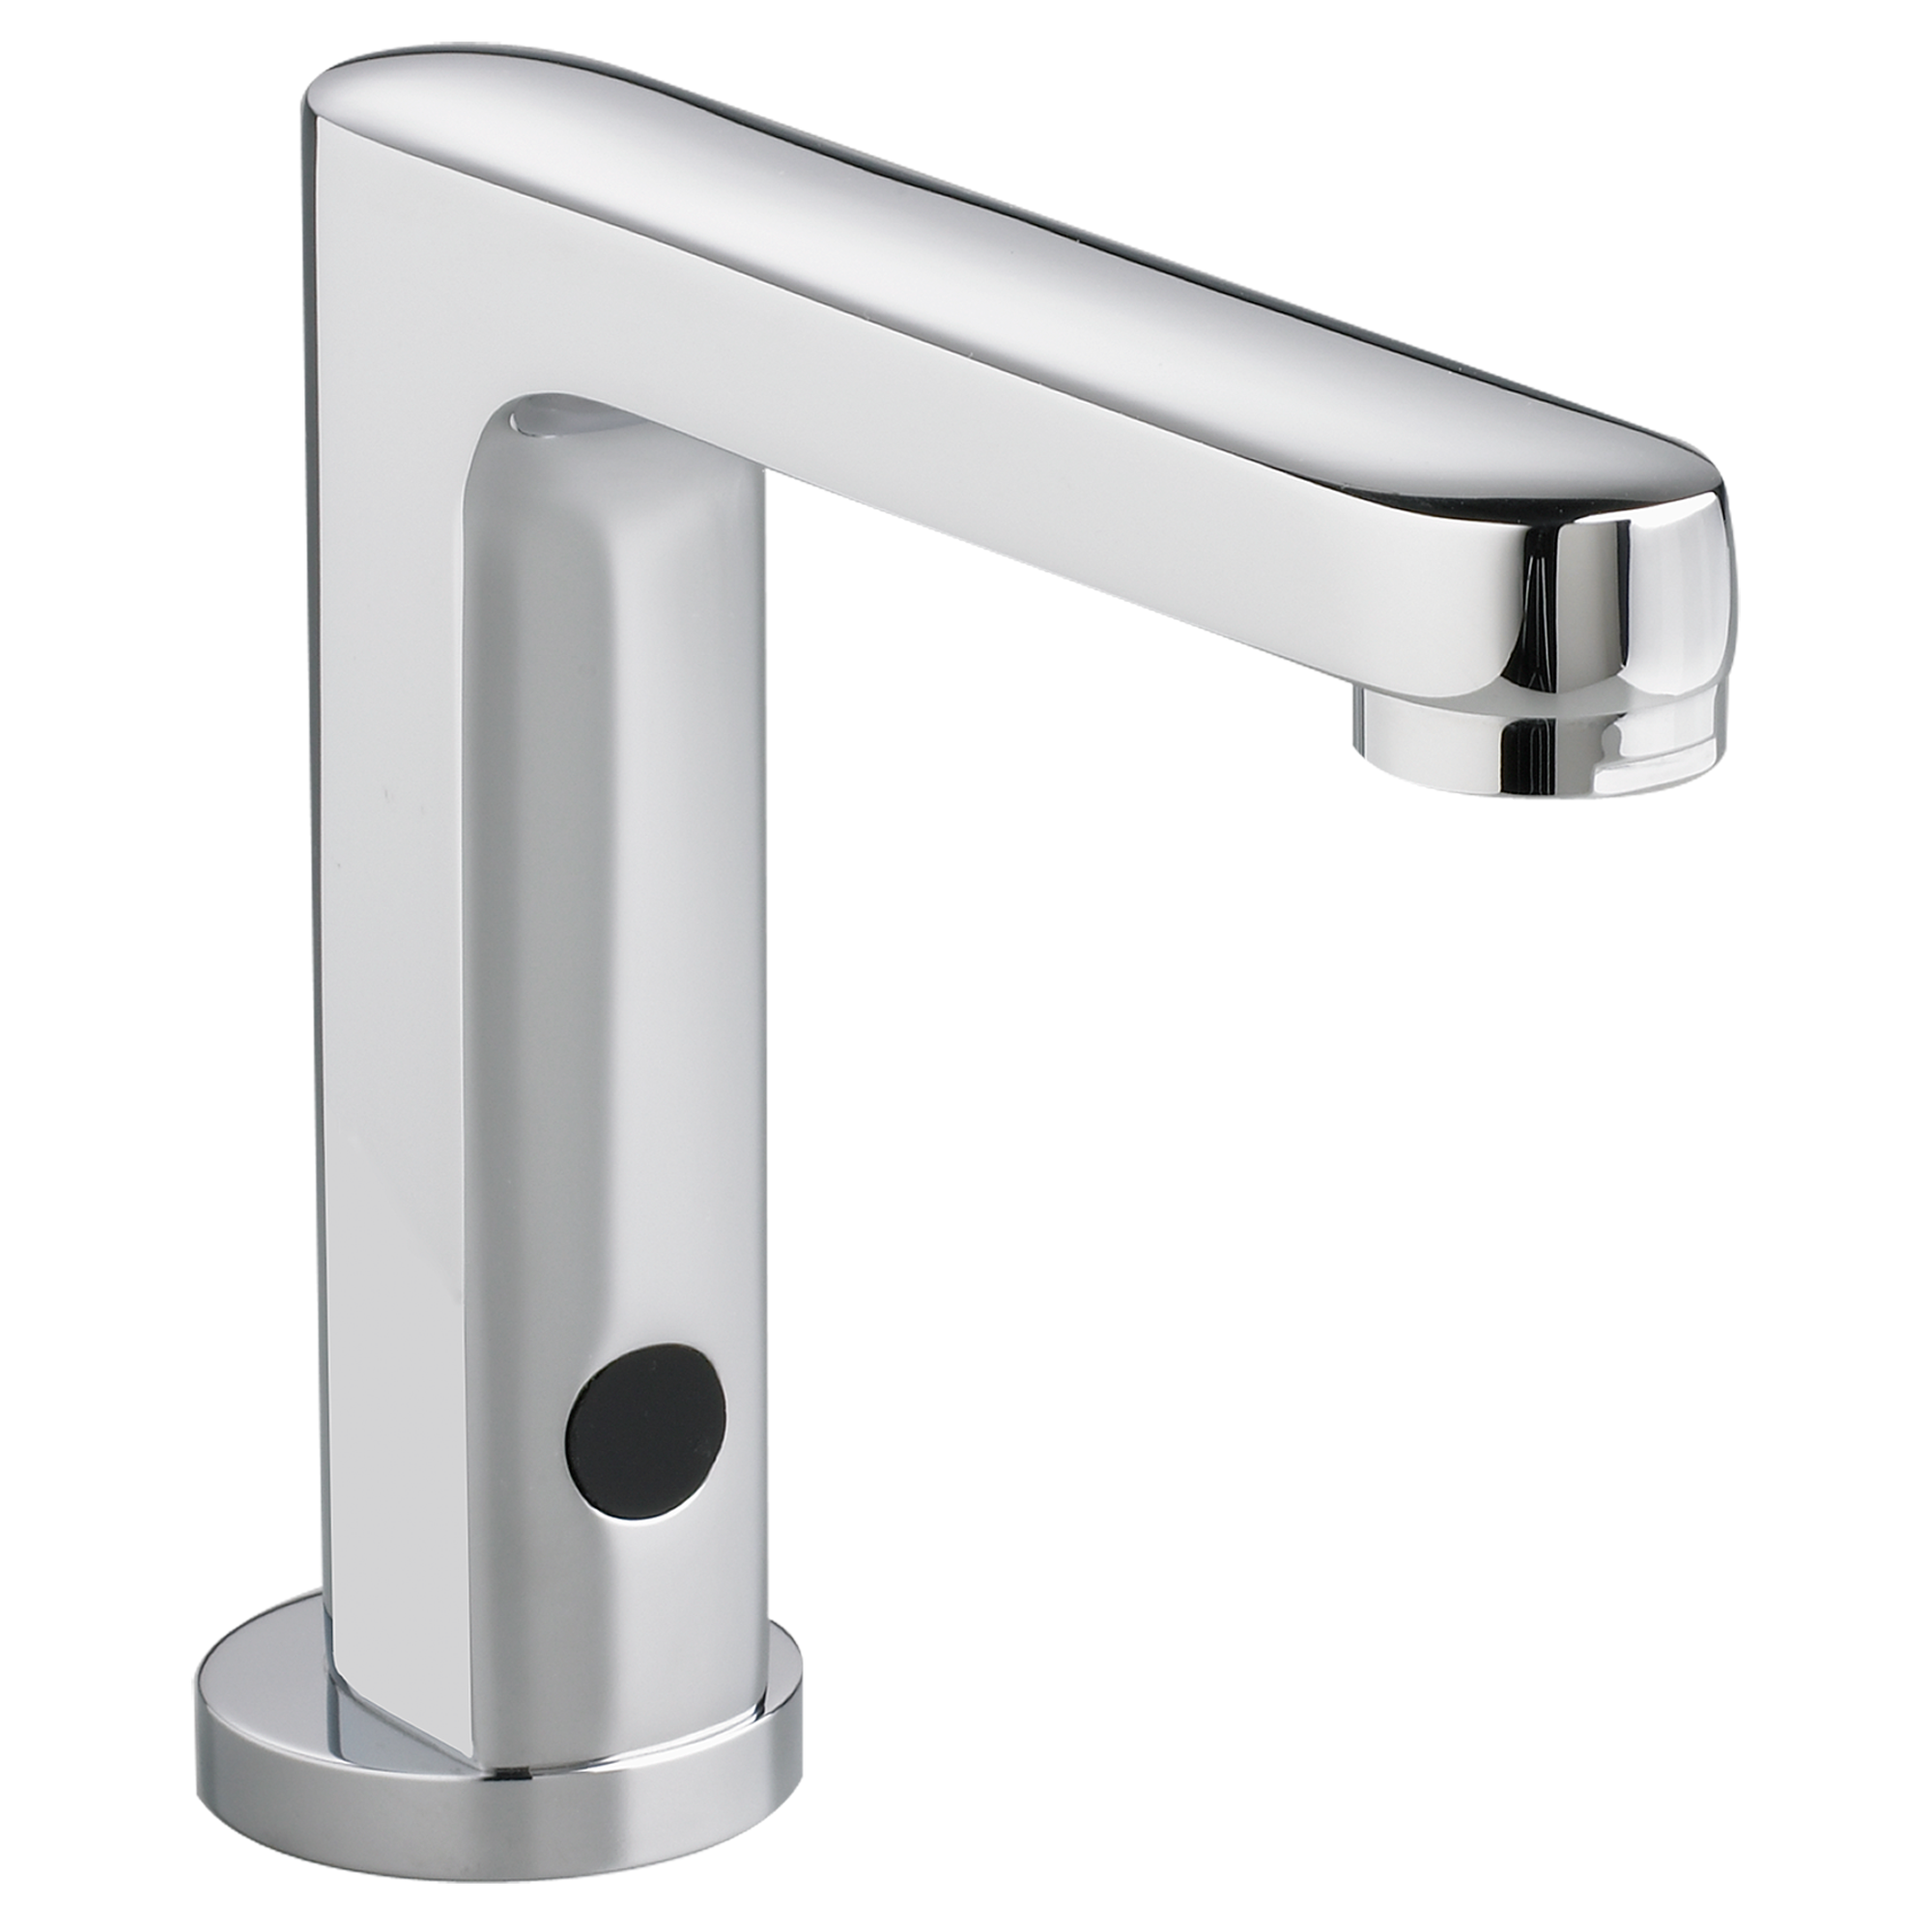 Cool Moments Selectronic Proximity Faucet | American Standard with regard to Set Commercial Bathroom Faucets